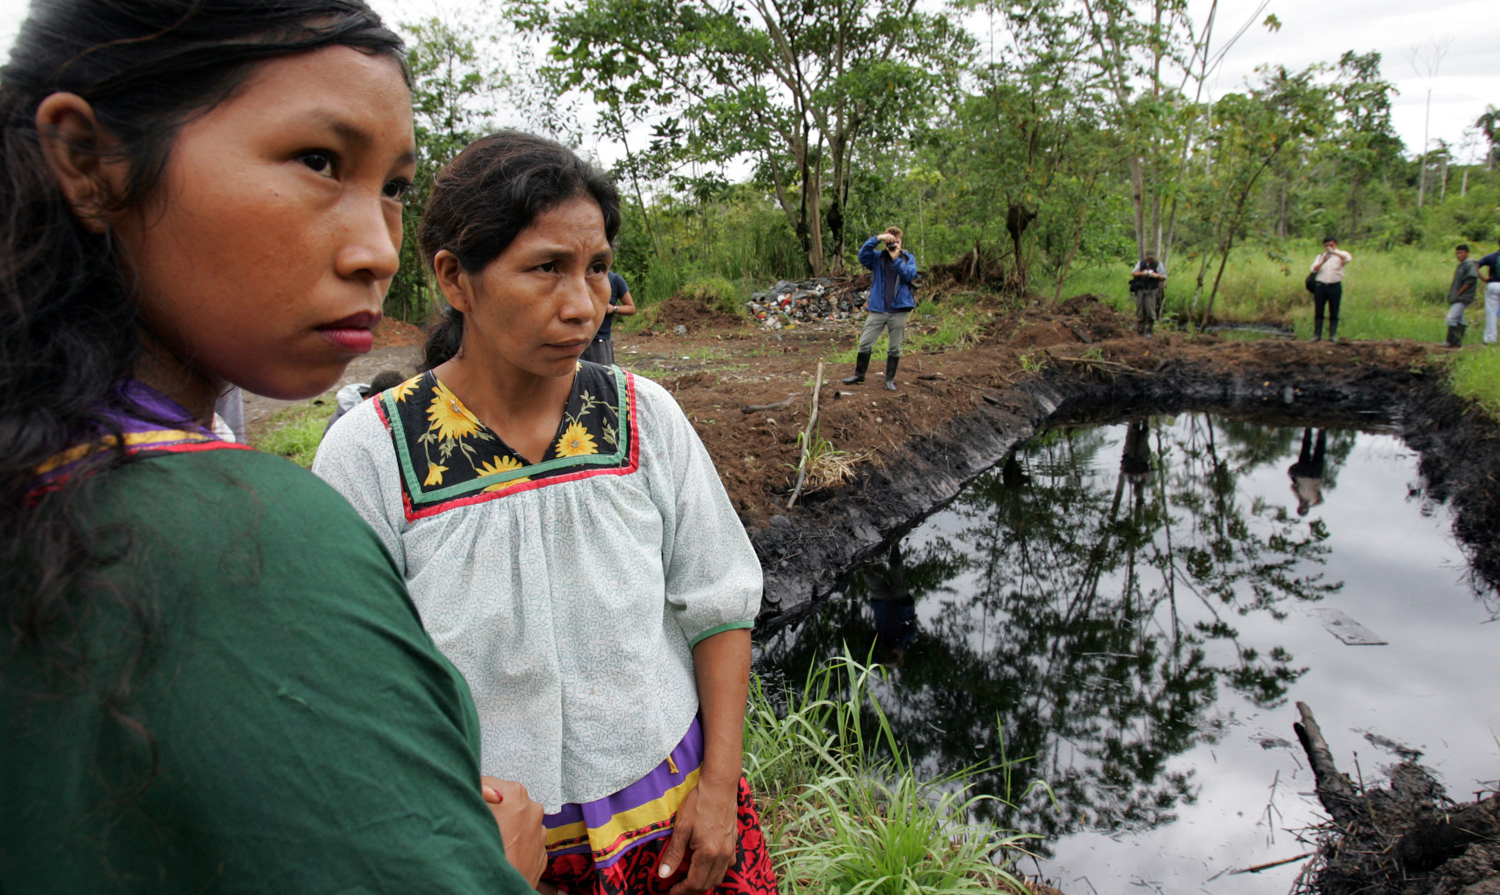 Cofán-women-near-a-pool-of-oil-in-the-Amazonian-region-of-Ecuador-2005